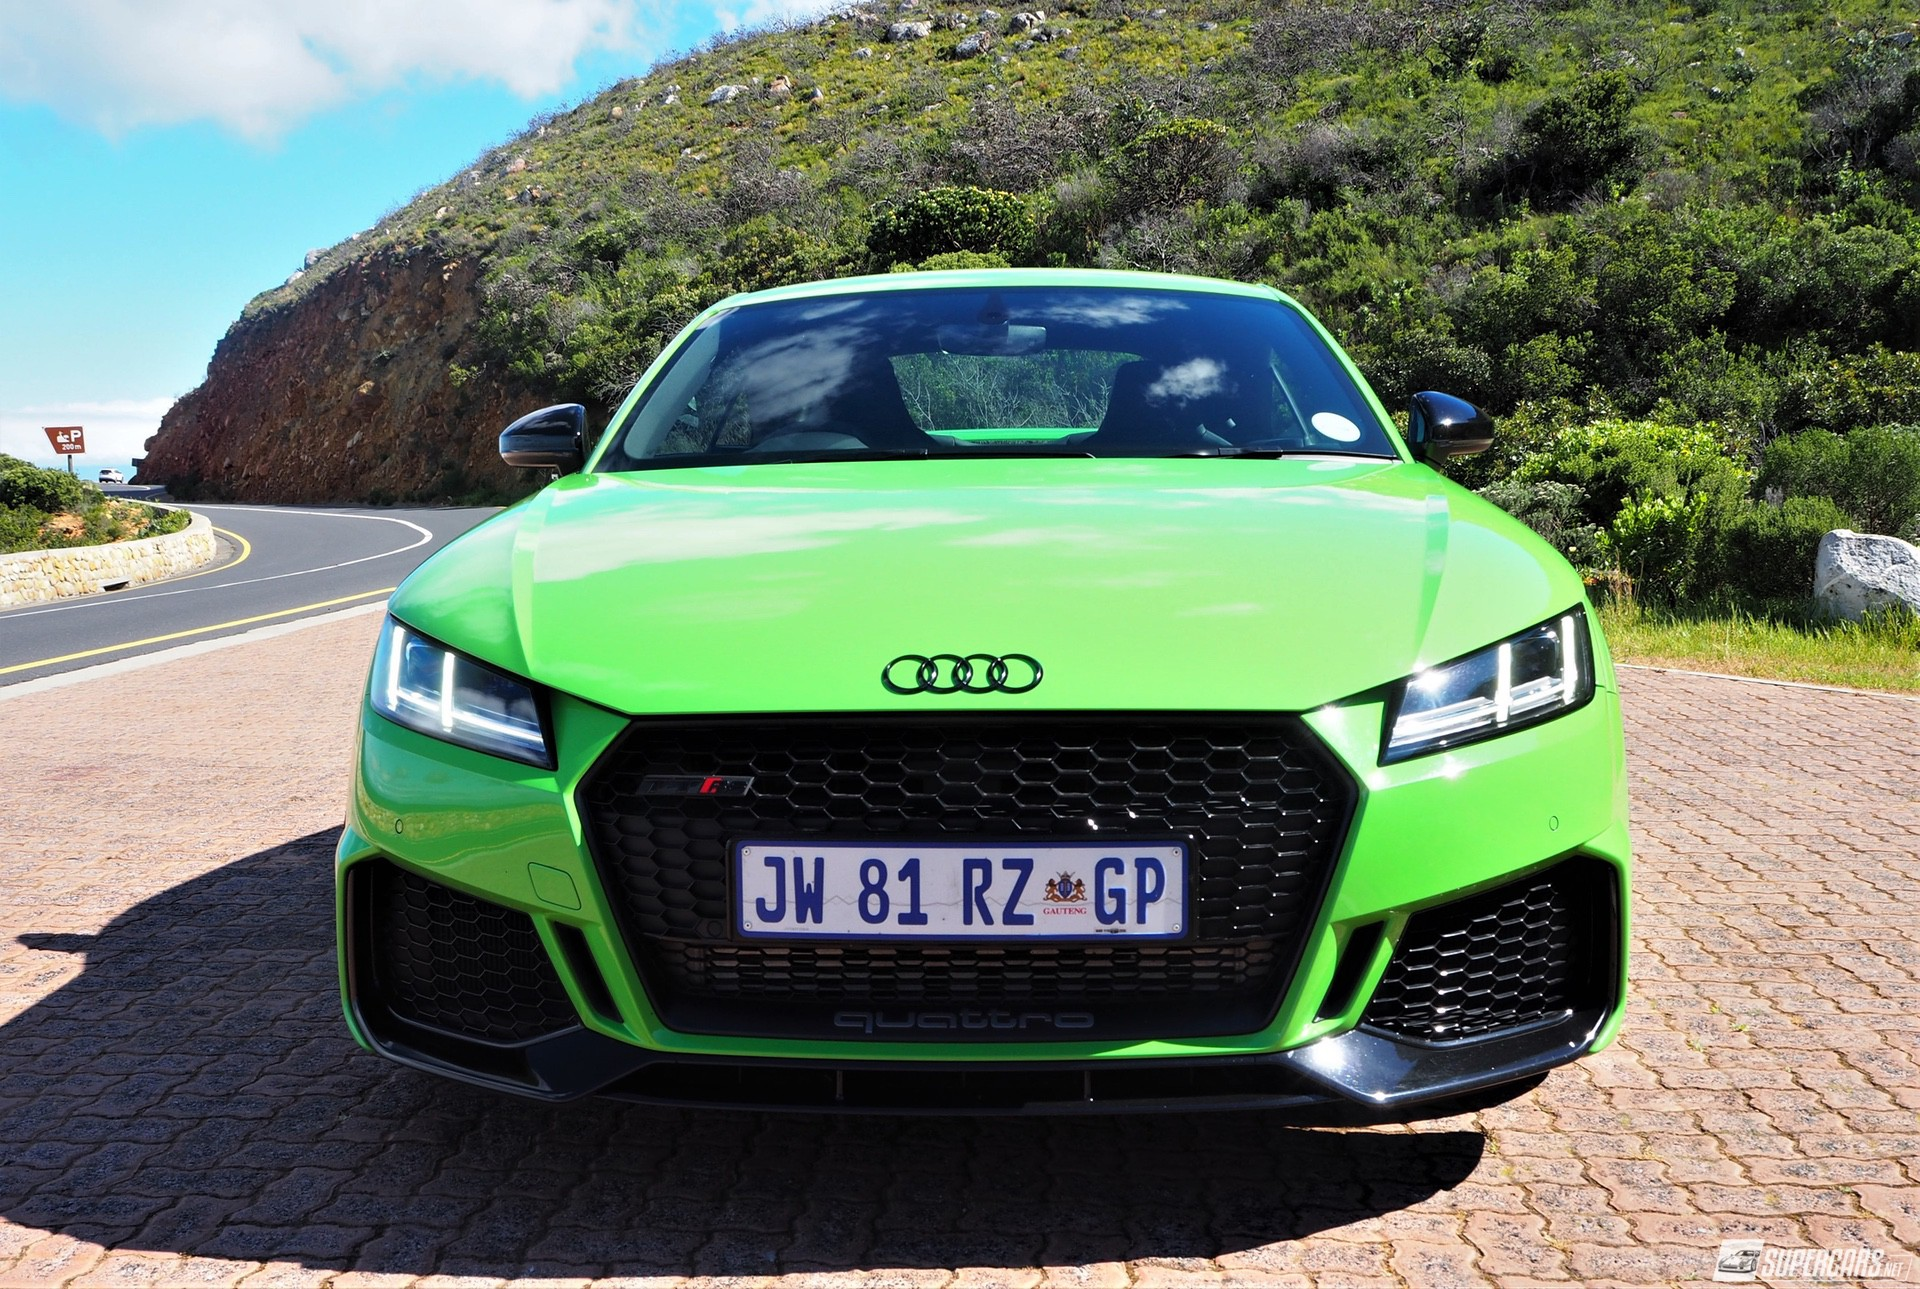 Front view of green 2022 Audi TT RS